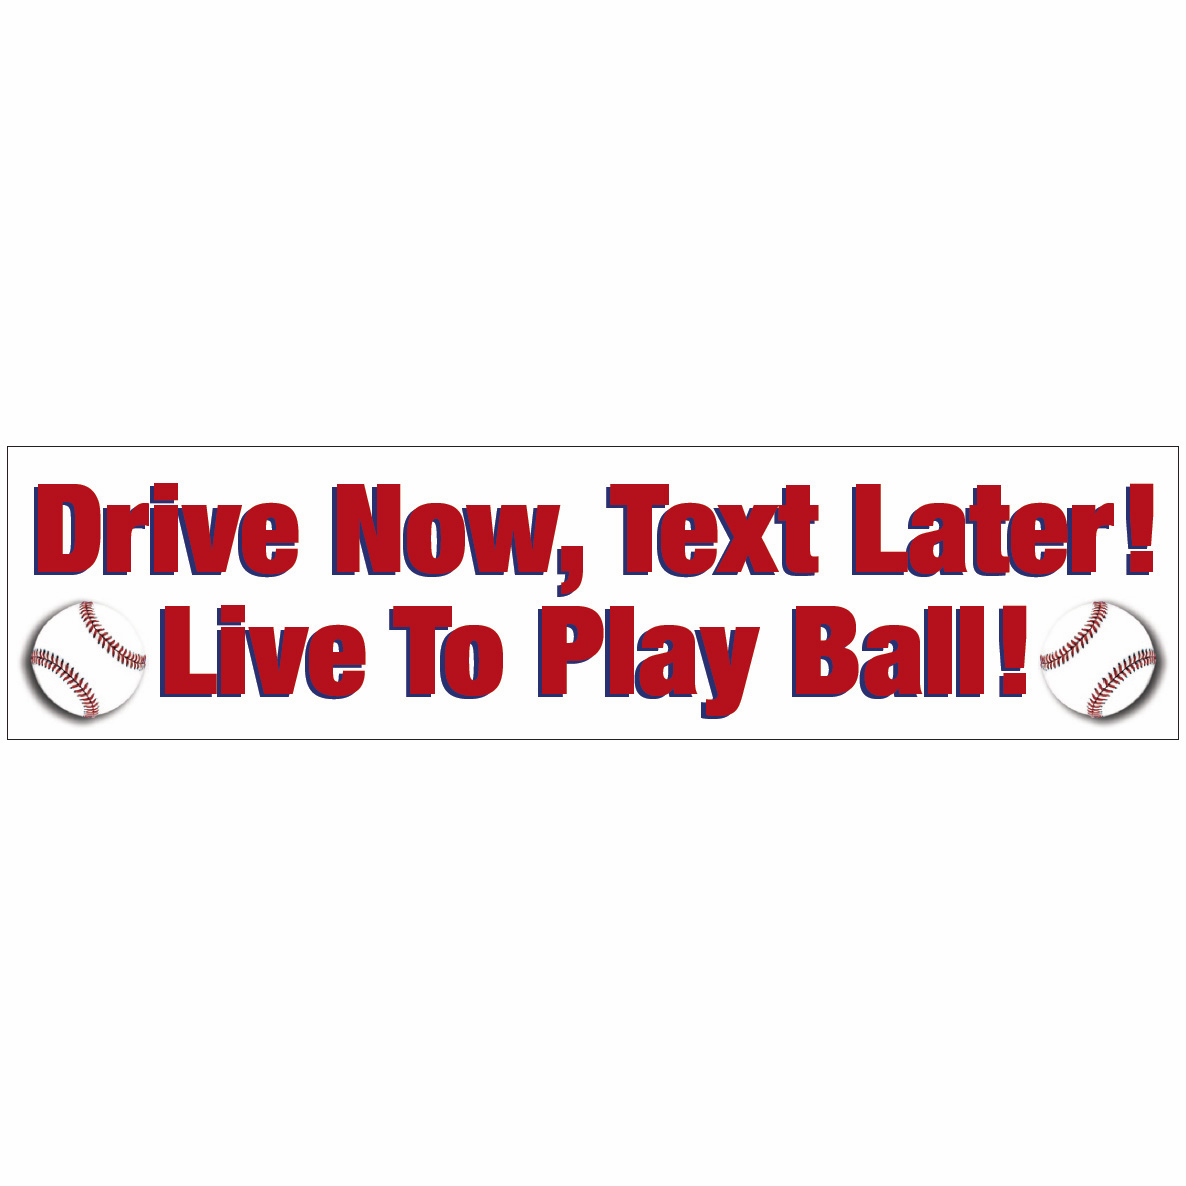 Drive Now Text Later Live To Play Ball Bumper Sticker